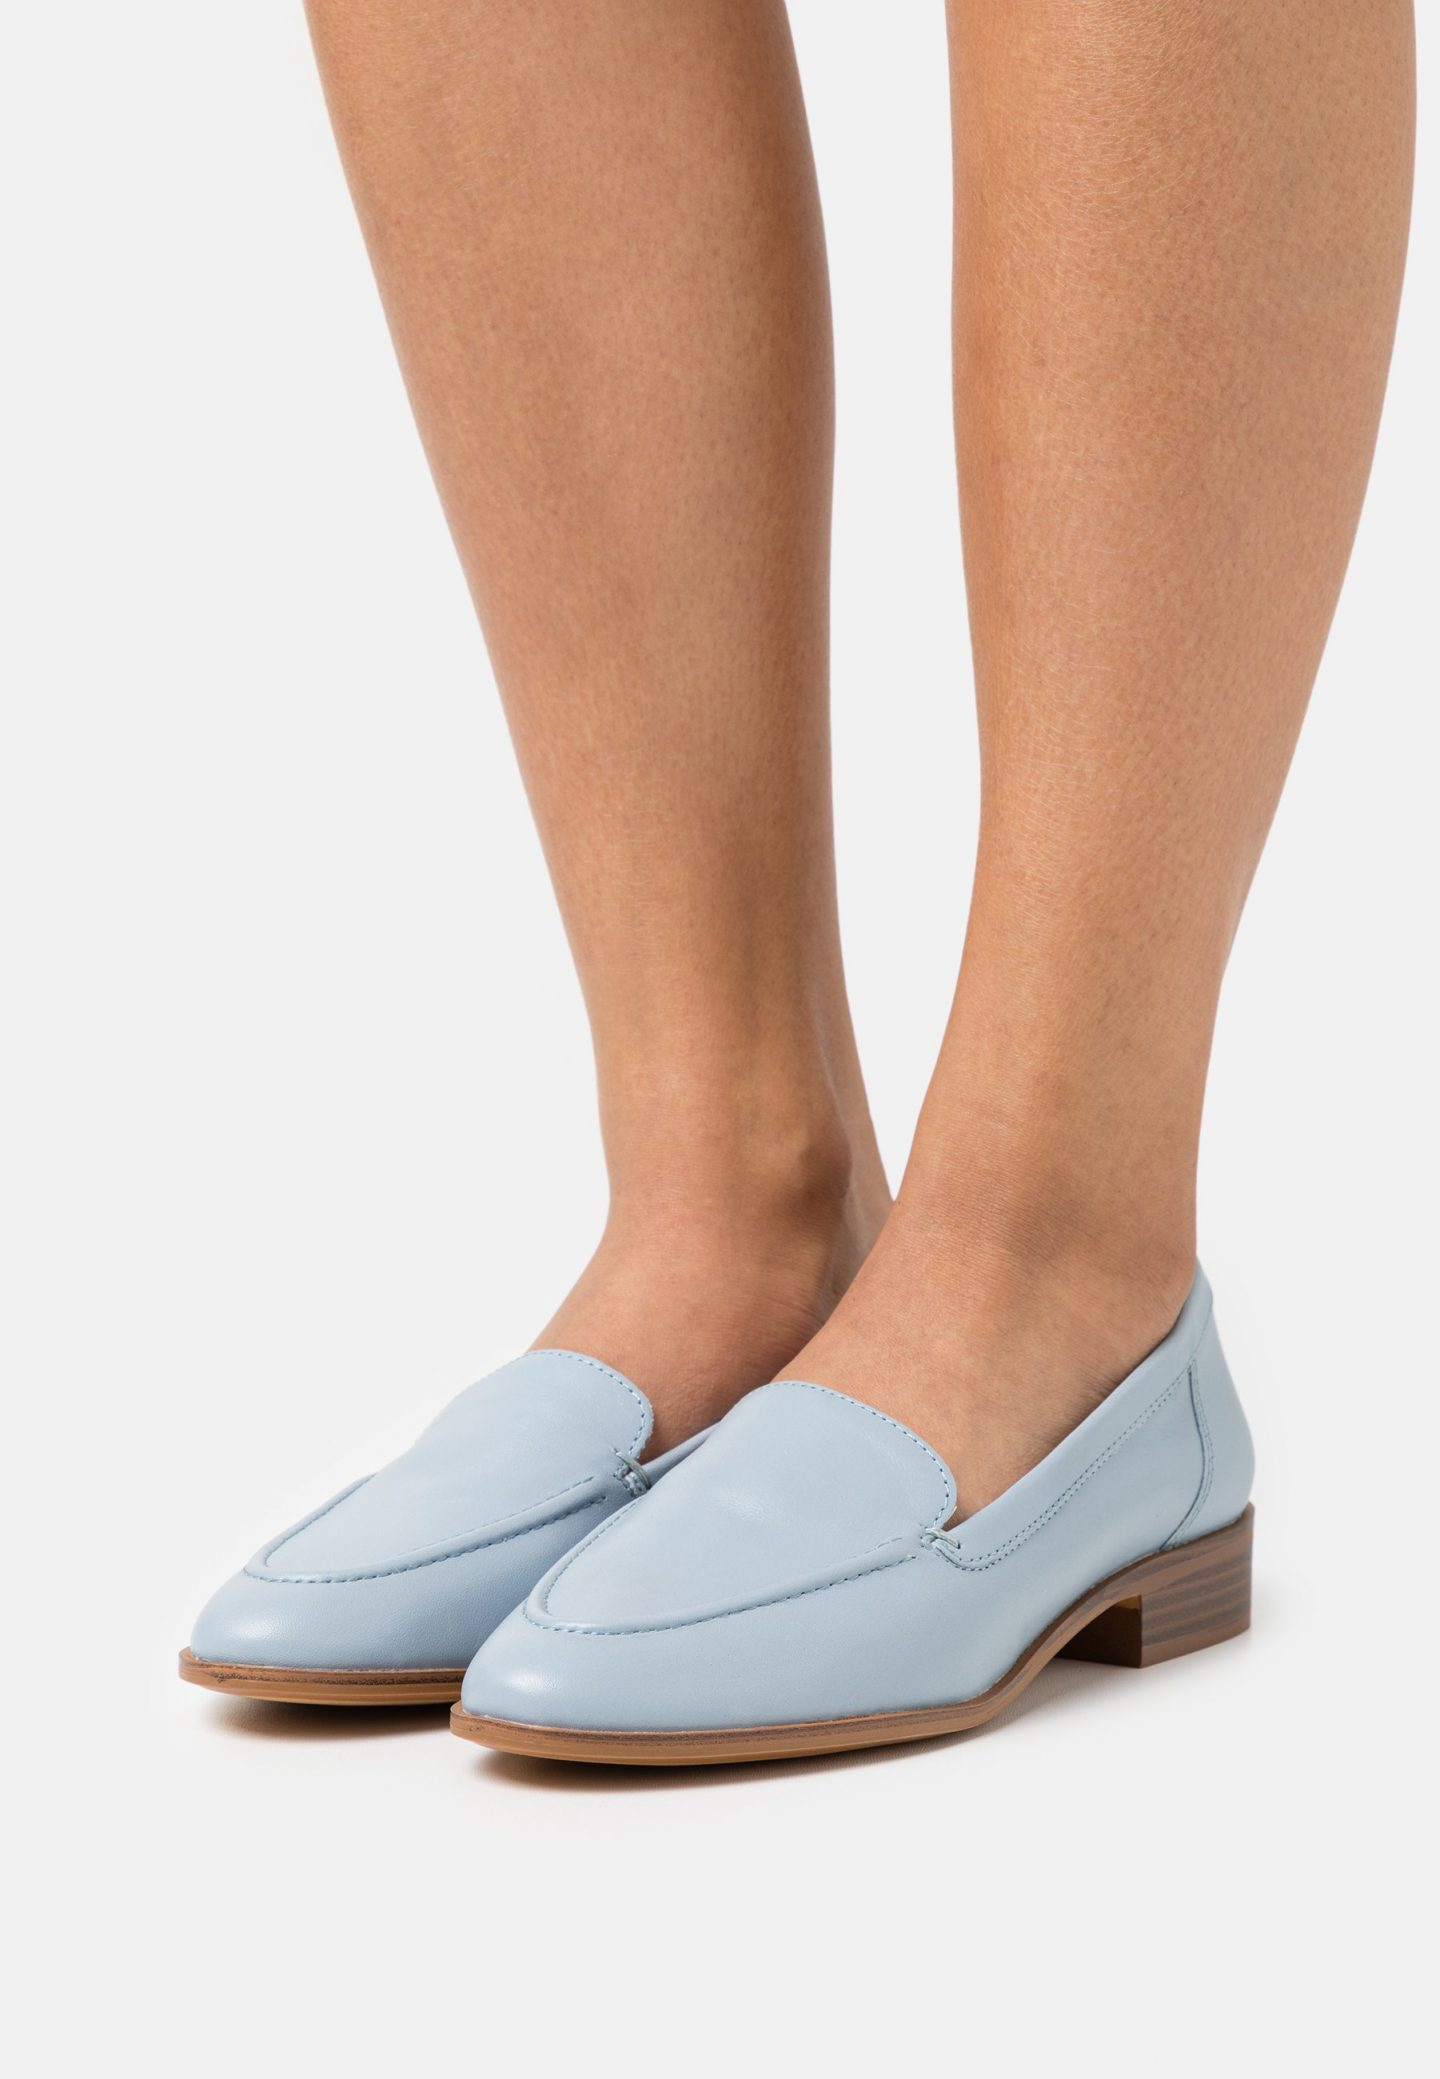 What Color Shoes To Wear With A Navy Dress: Light blue loafers